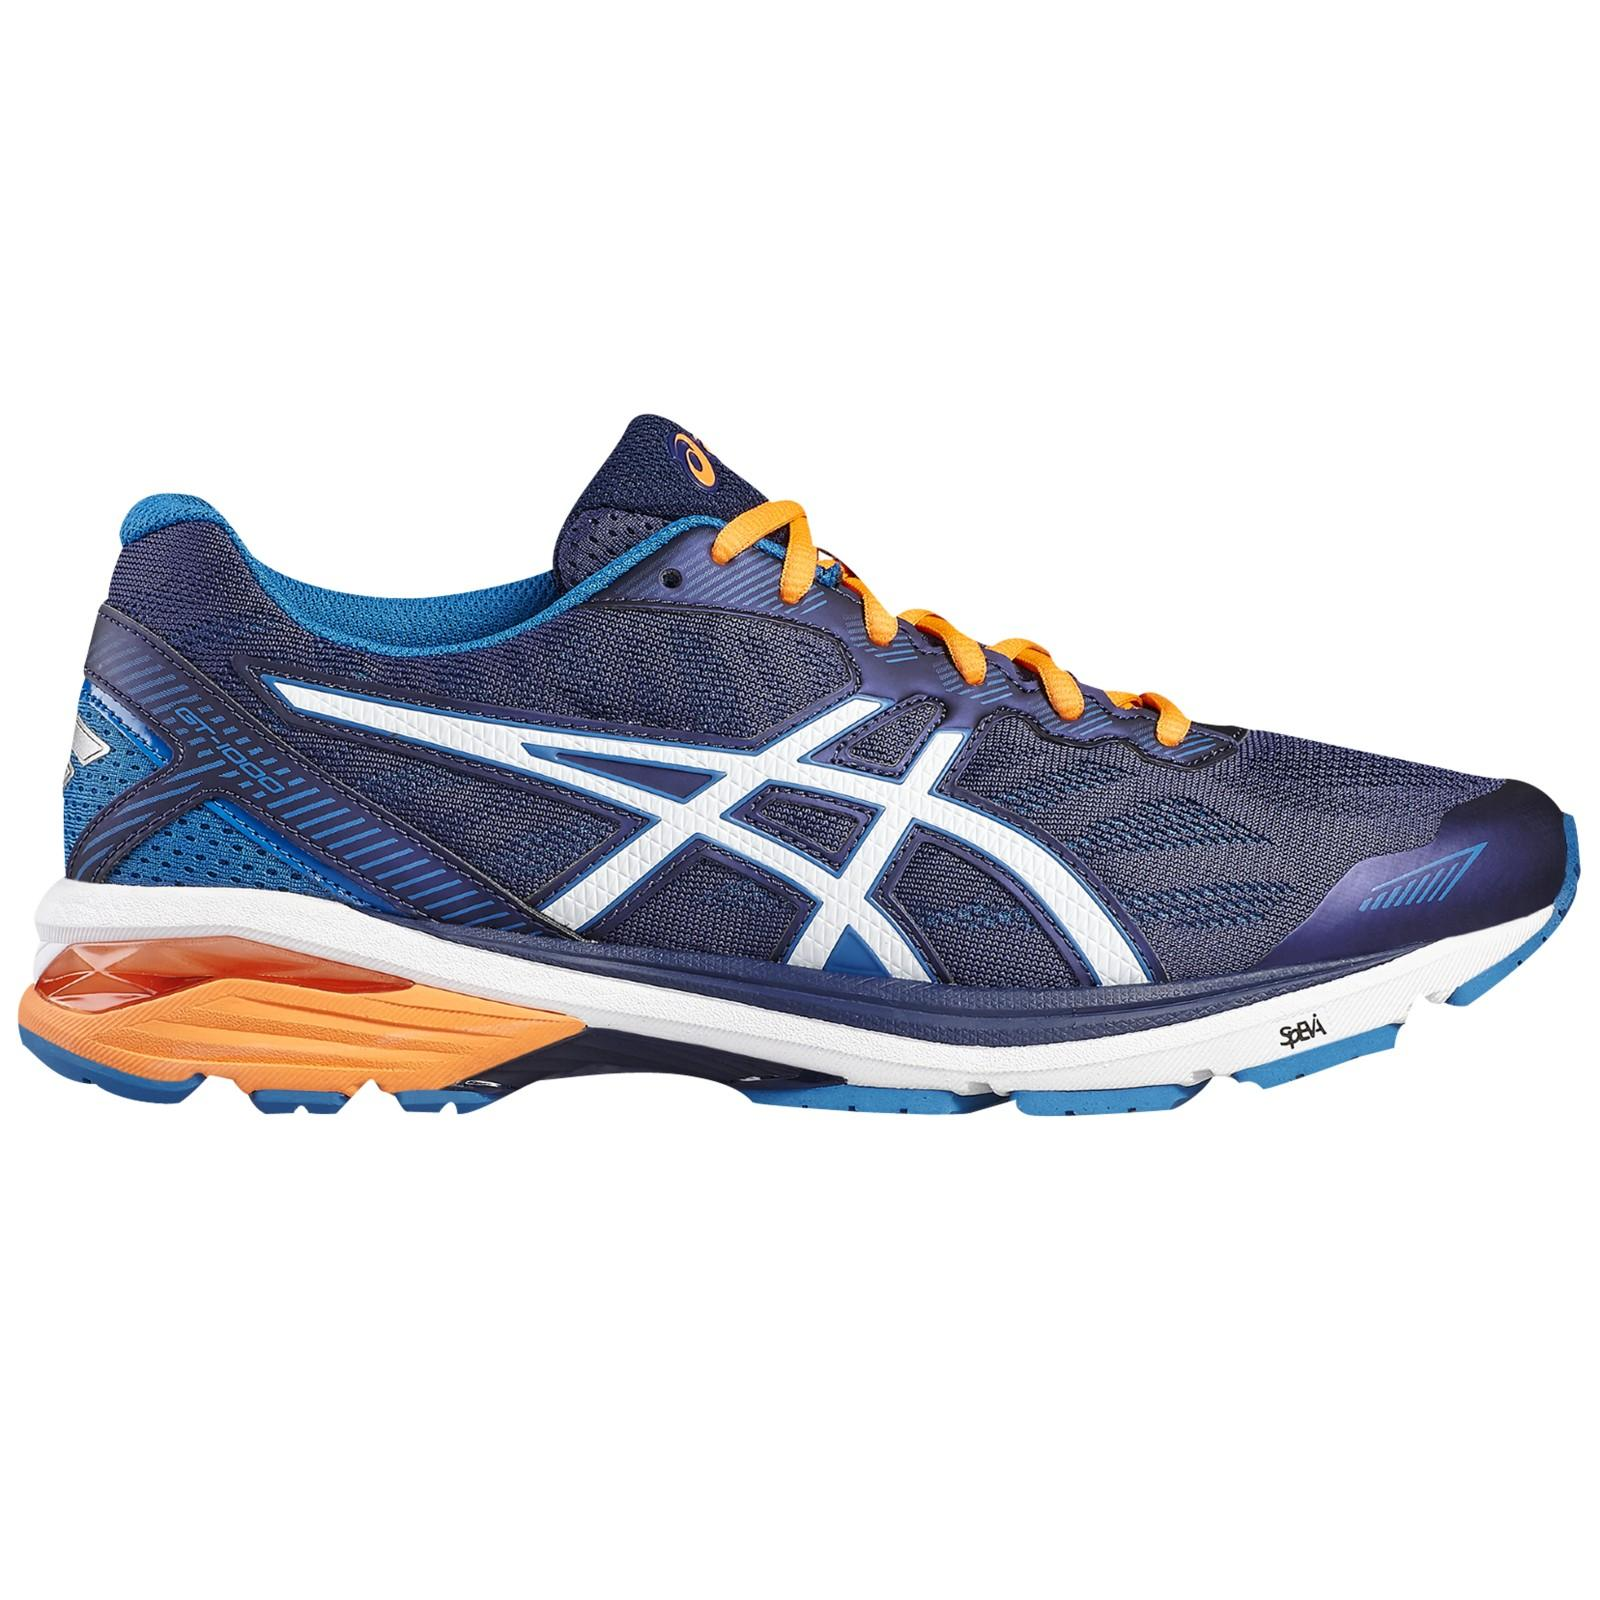 Mens Running Shoes For Pronation